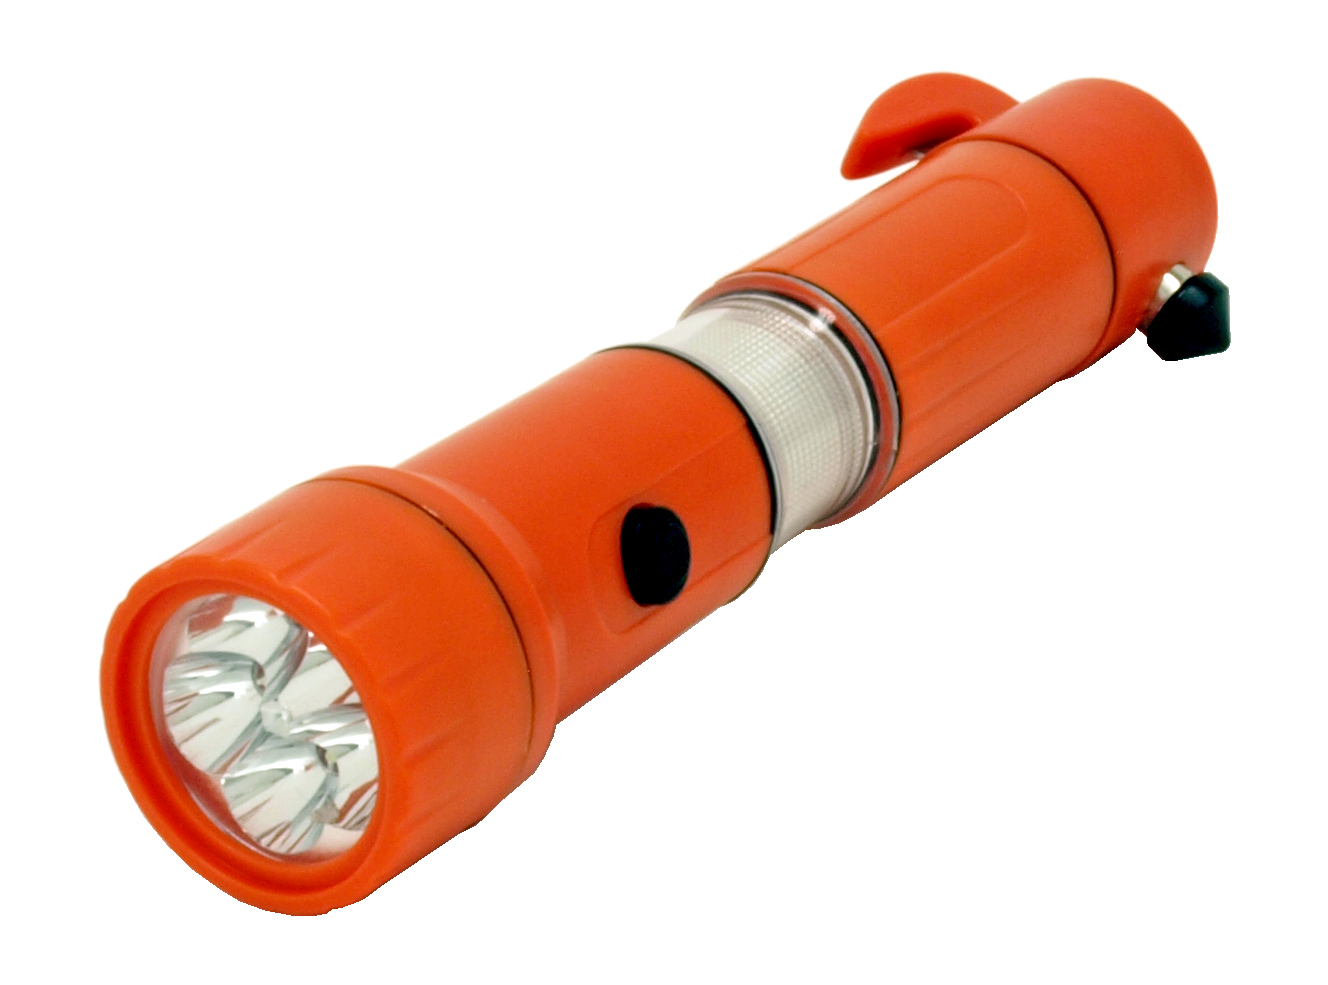 Geared Up 5-in-1 Emergency Tool Flashlight